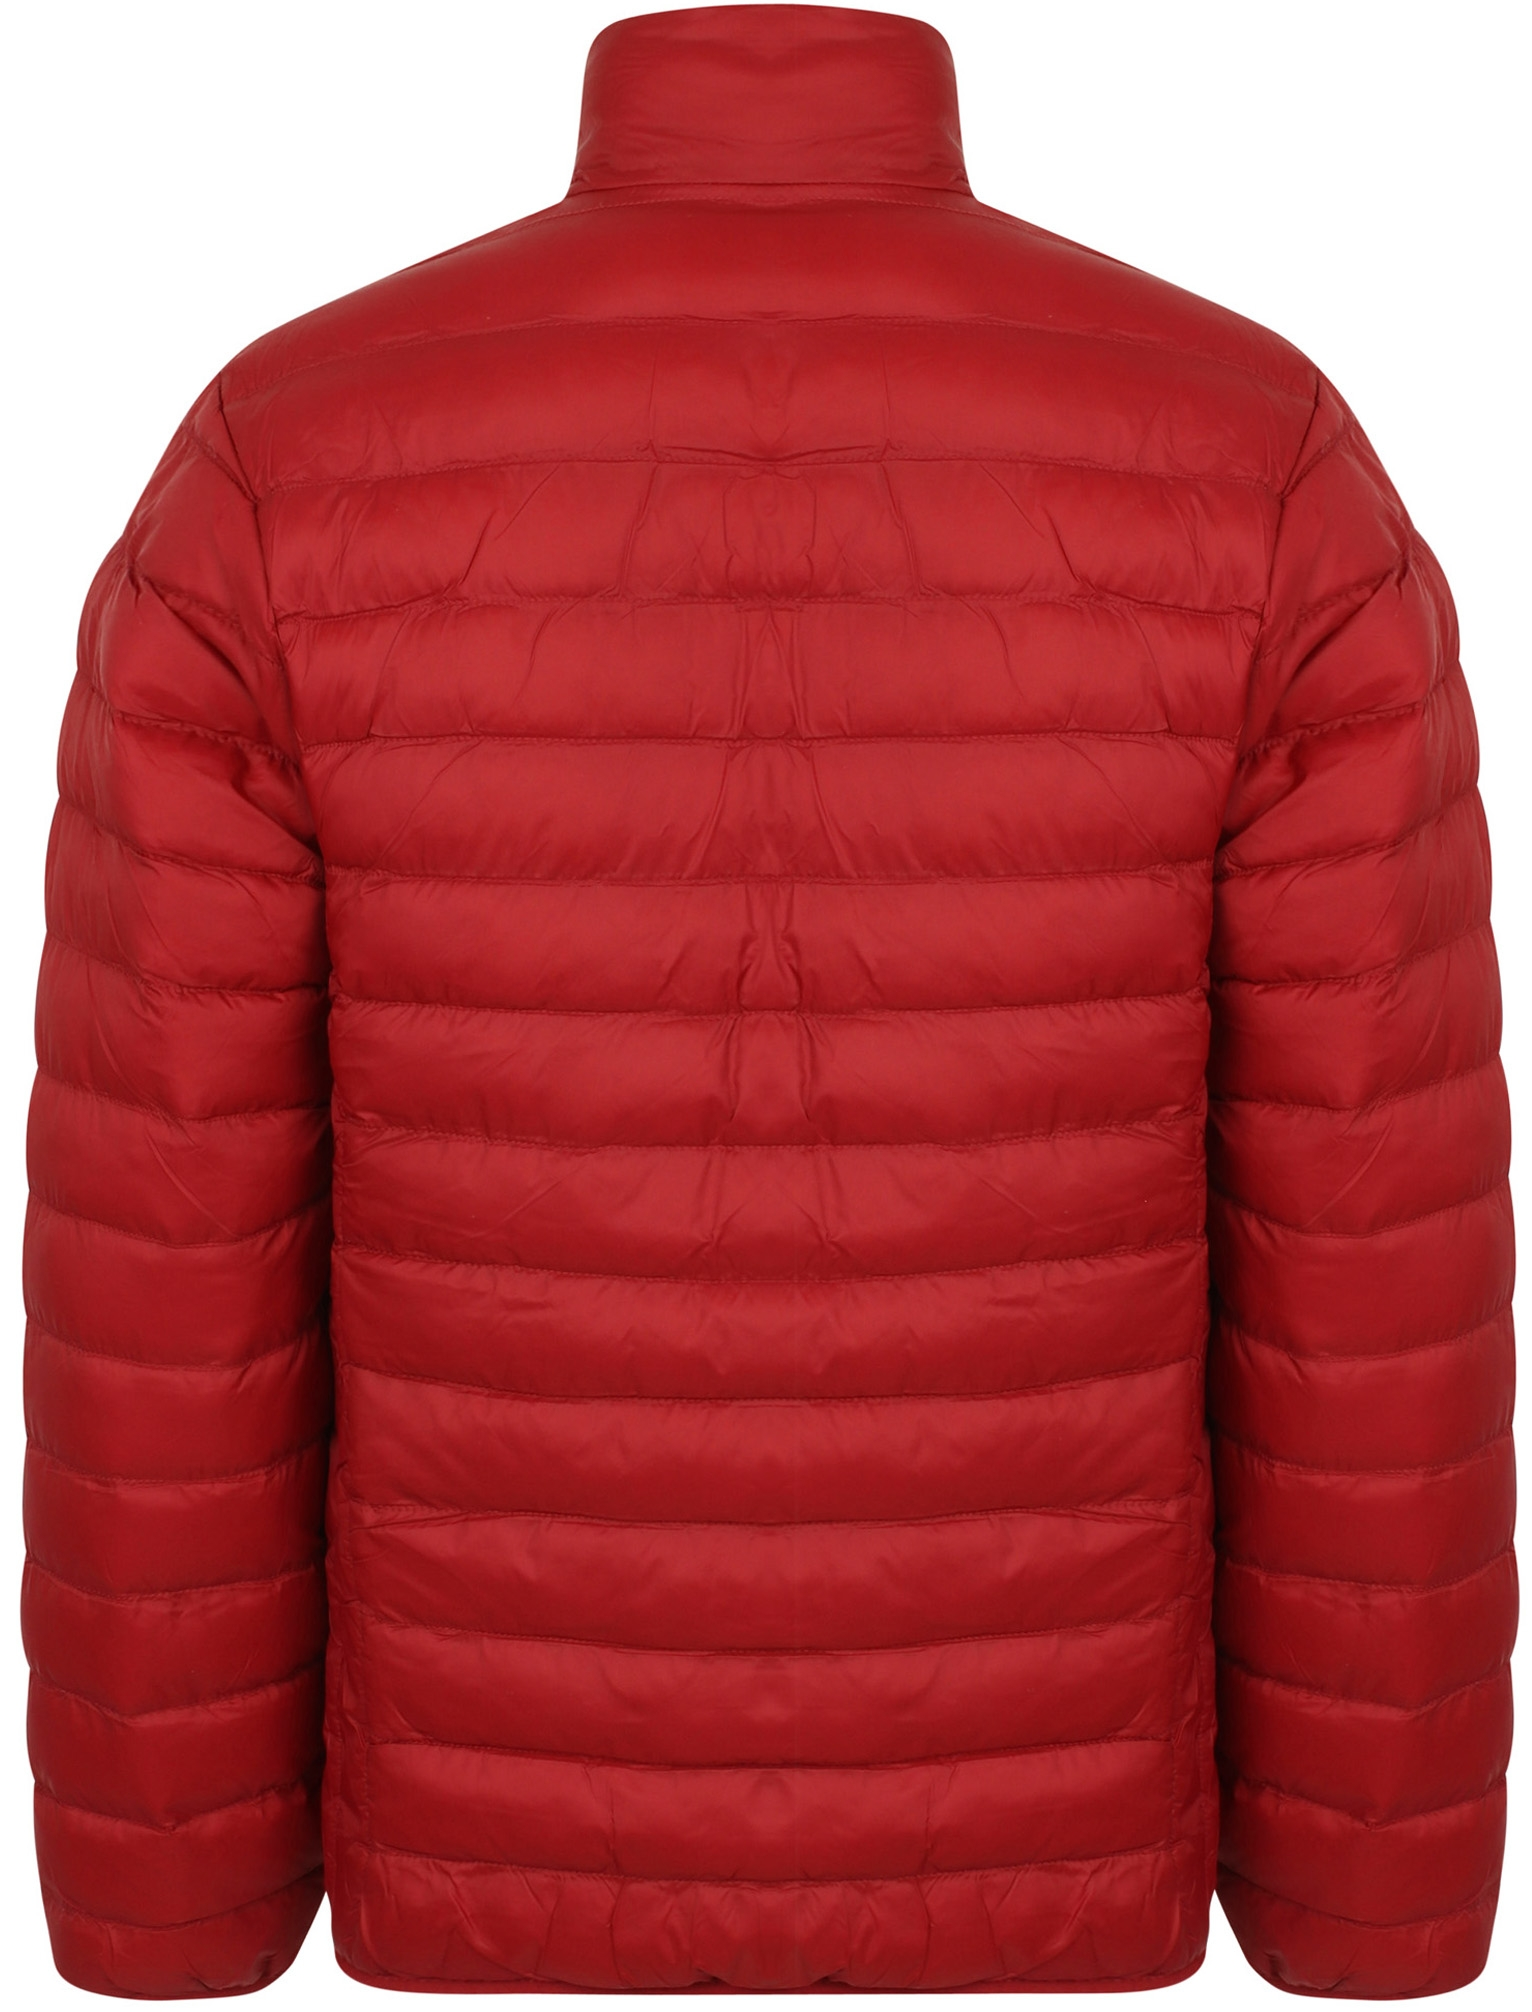 Tokyo-Laundry-Men-039-s-Bakman-Plain-Quilted-Padded-Puffer-Bubble-Jacket thumbnail 5